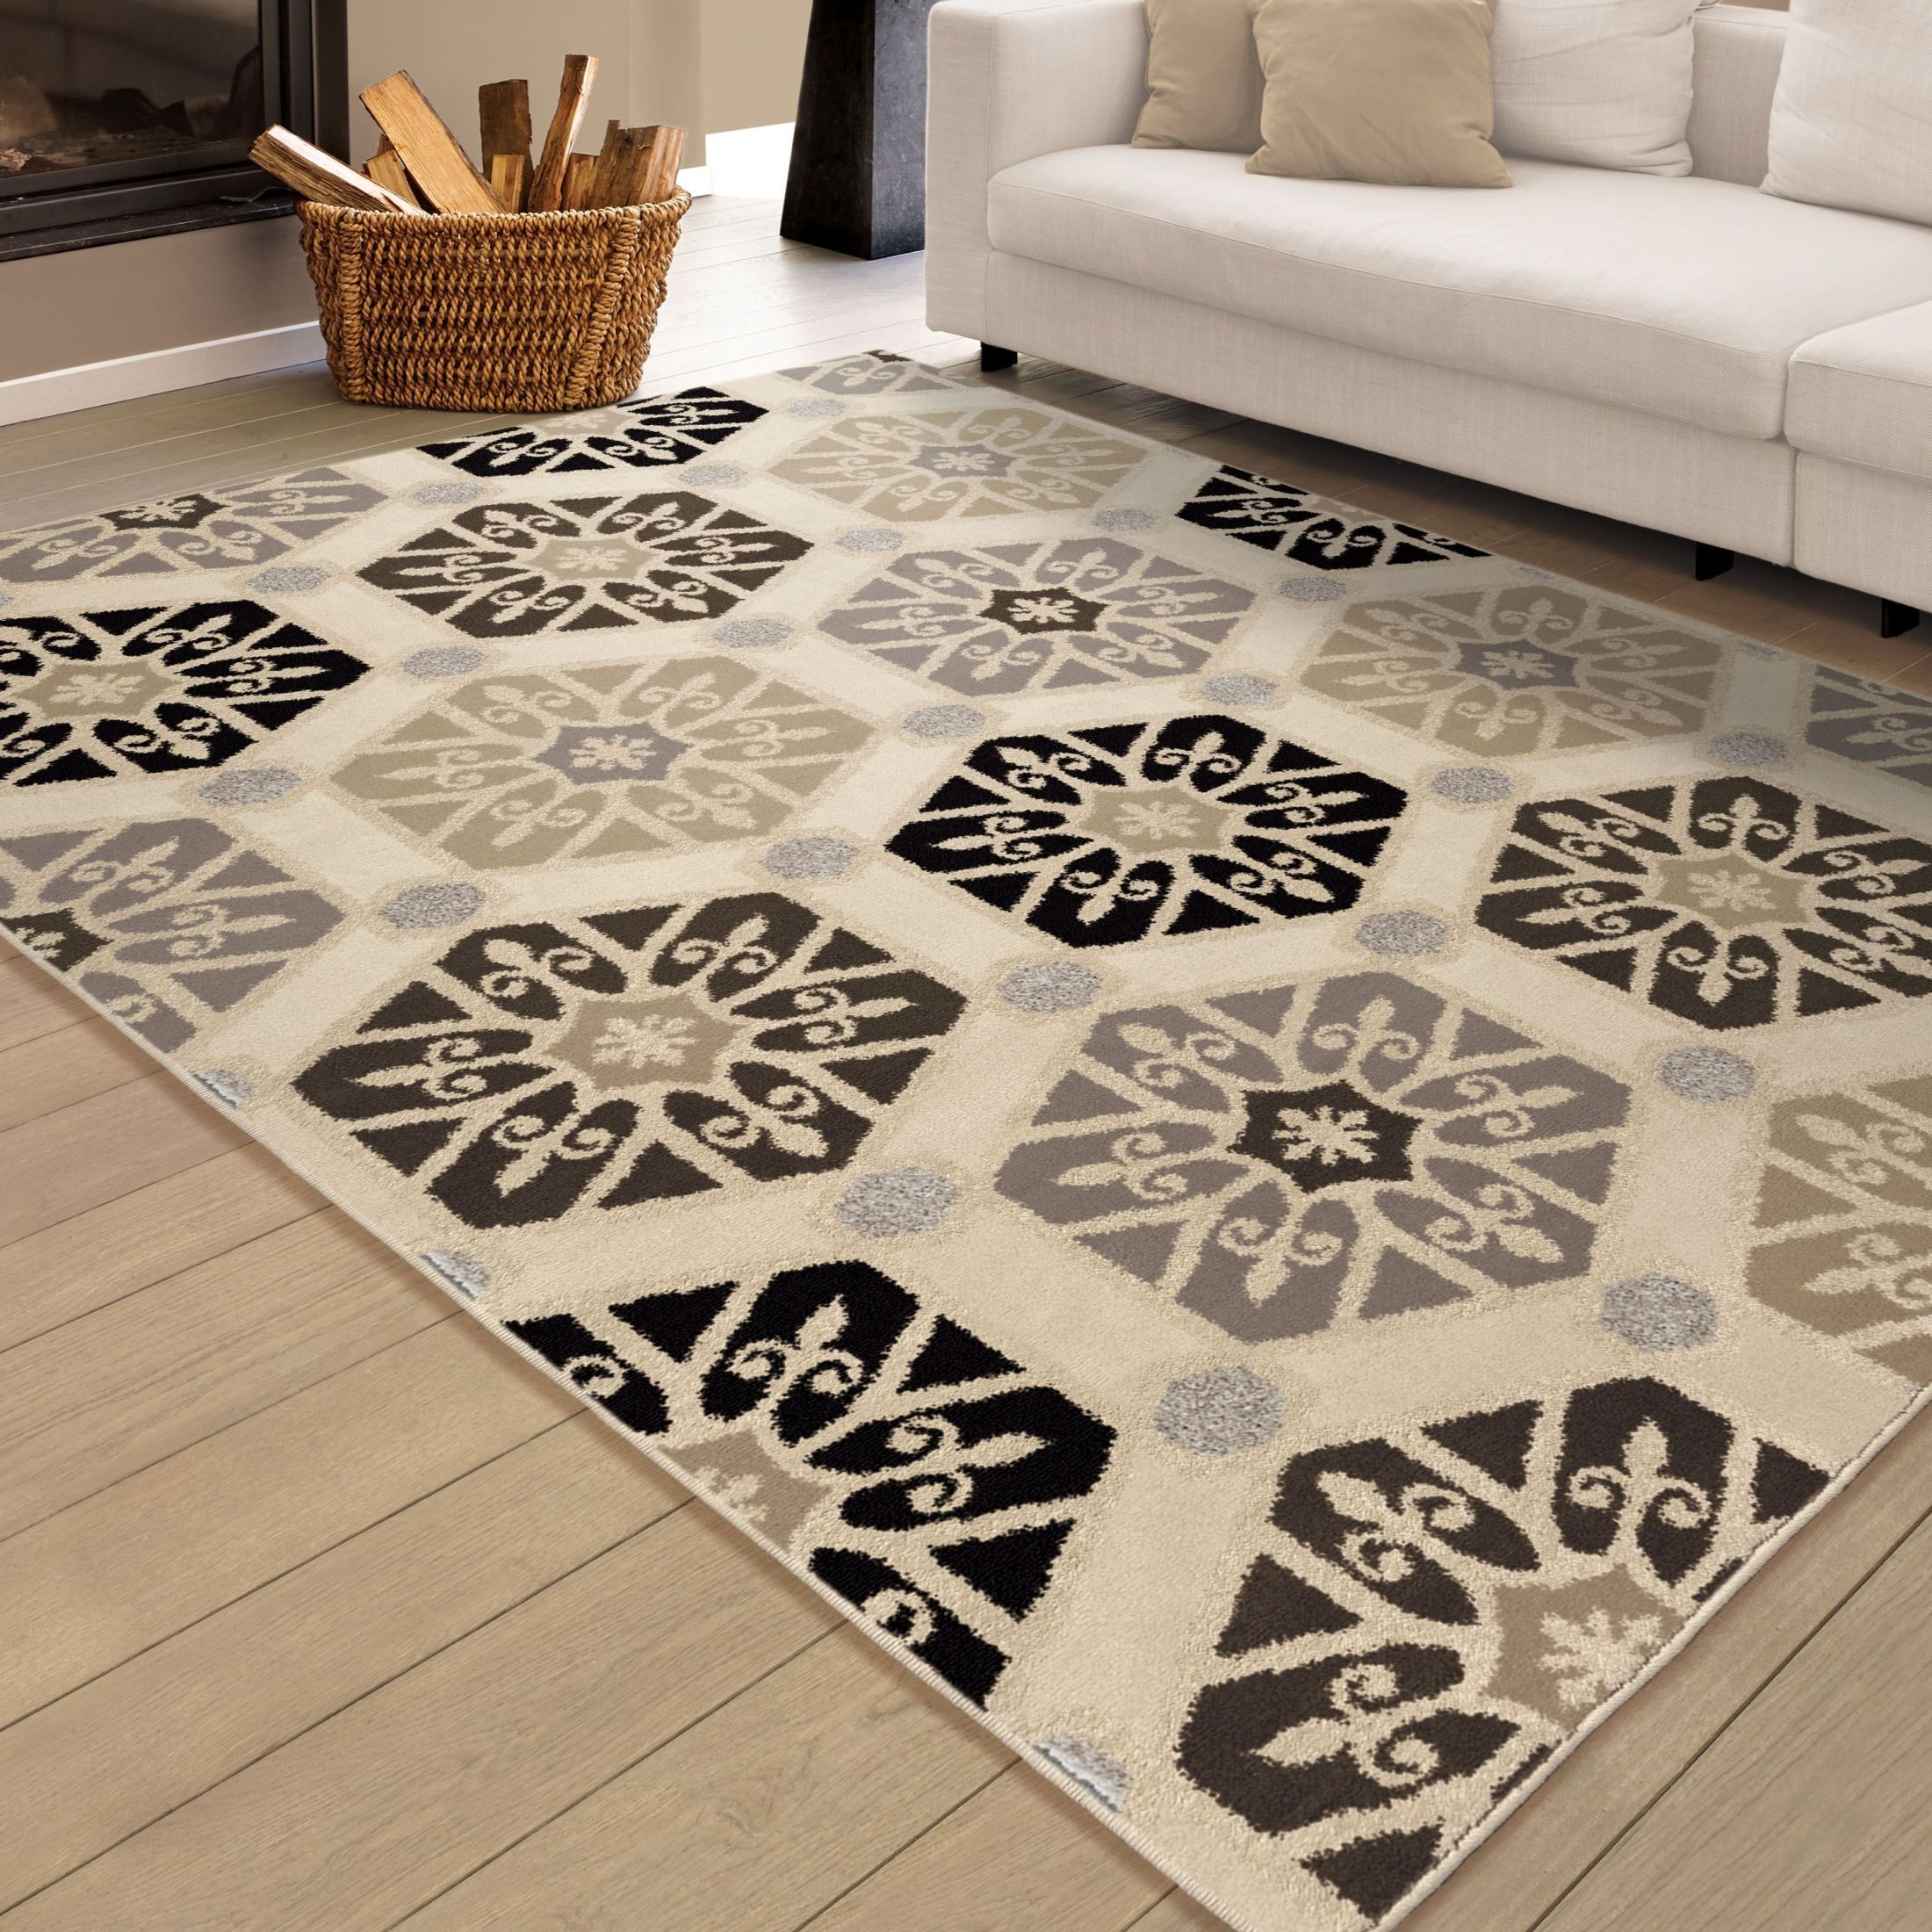 Discount 8x11 Area Rugs: Epiphany Soft Medallions Partha Multi Small Area Rug From